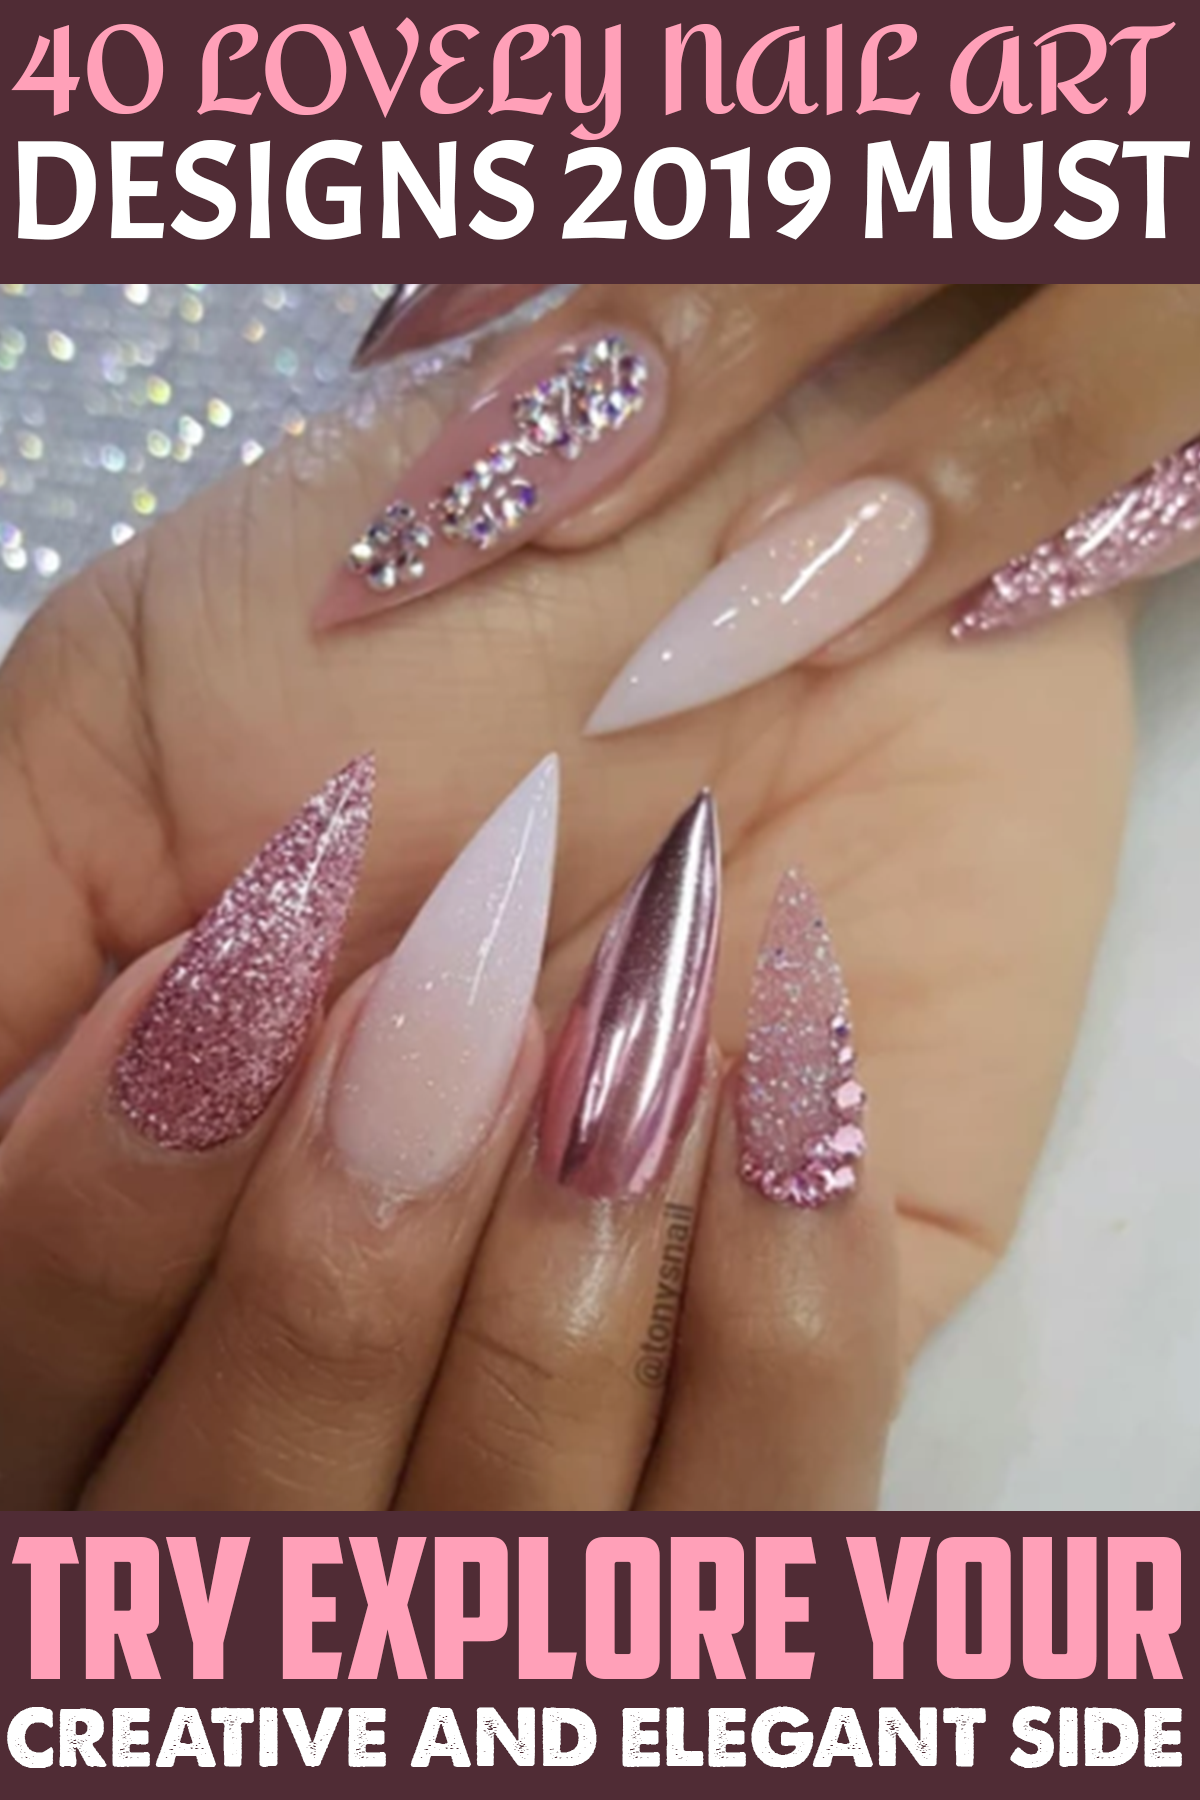 40 Lovely Nail Art Designs 2019 Must Try Explore Your Creative And Elegant Side Ruzove Nechty Nechtovy Dizajn Letne Nechty